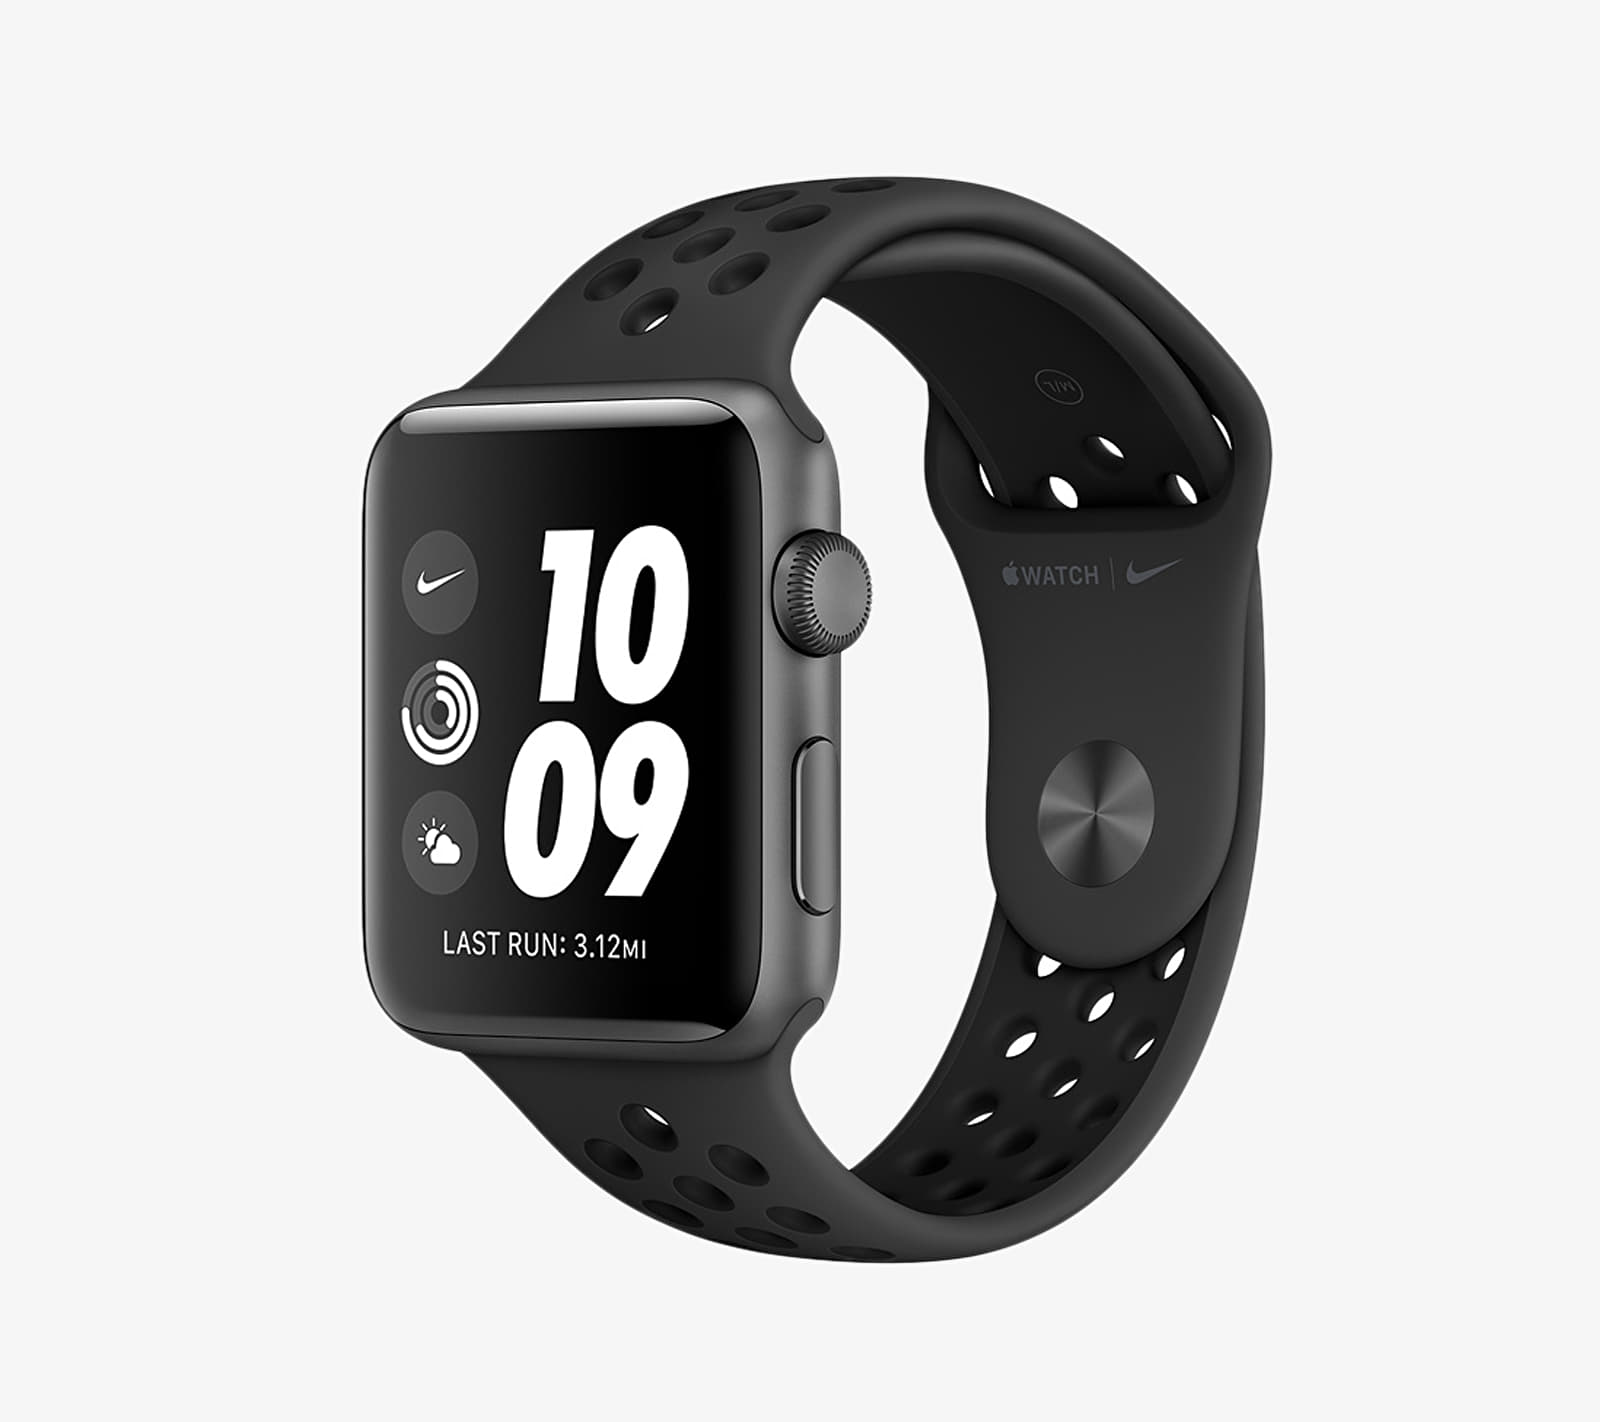 Apple Watch Nike+ 38mm Series 3 Space Grey Aluminium Case with Nike Sport Band Anthracite/ Black univerzální